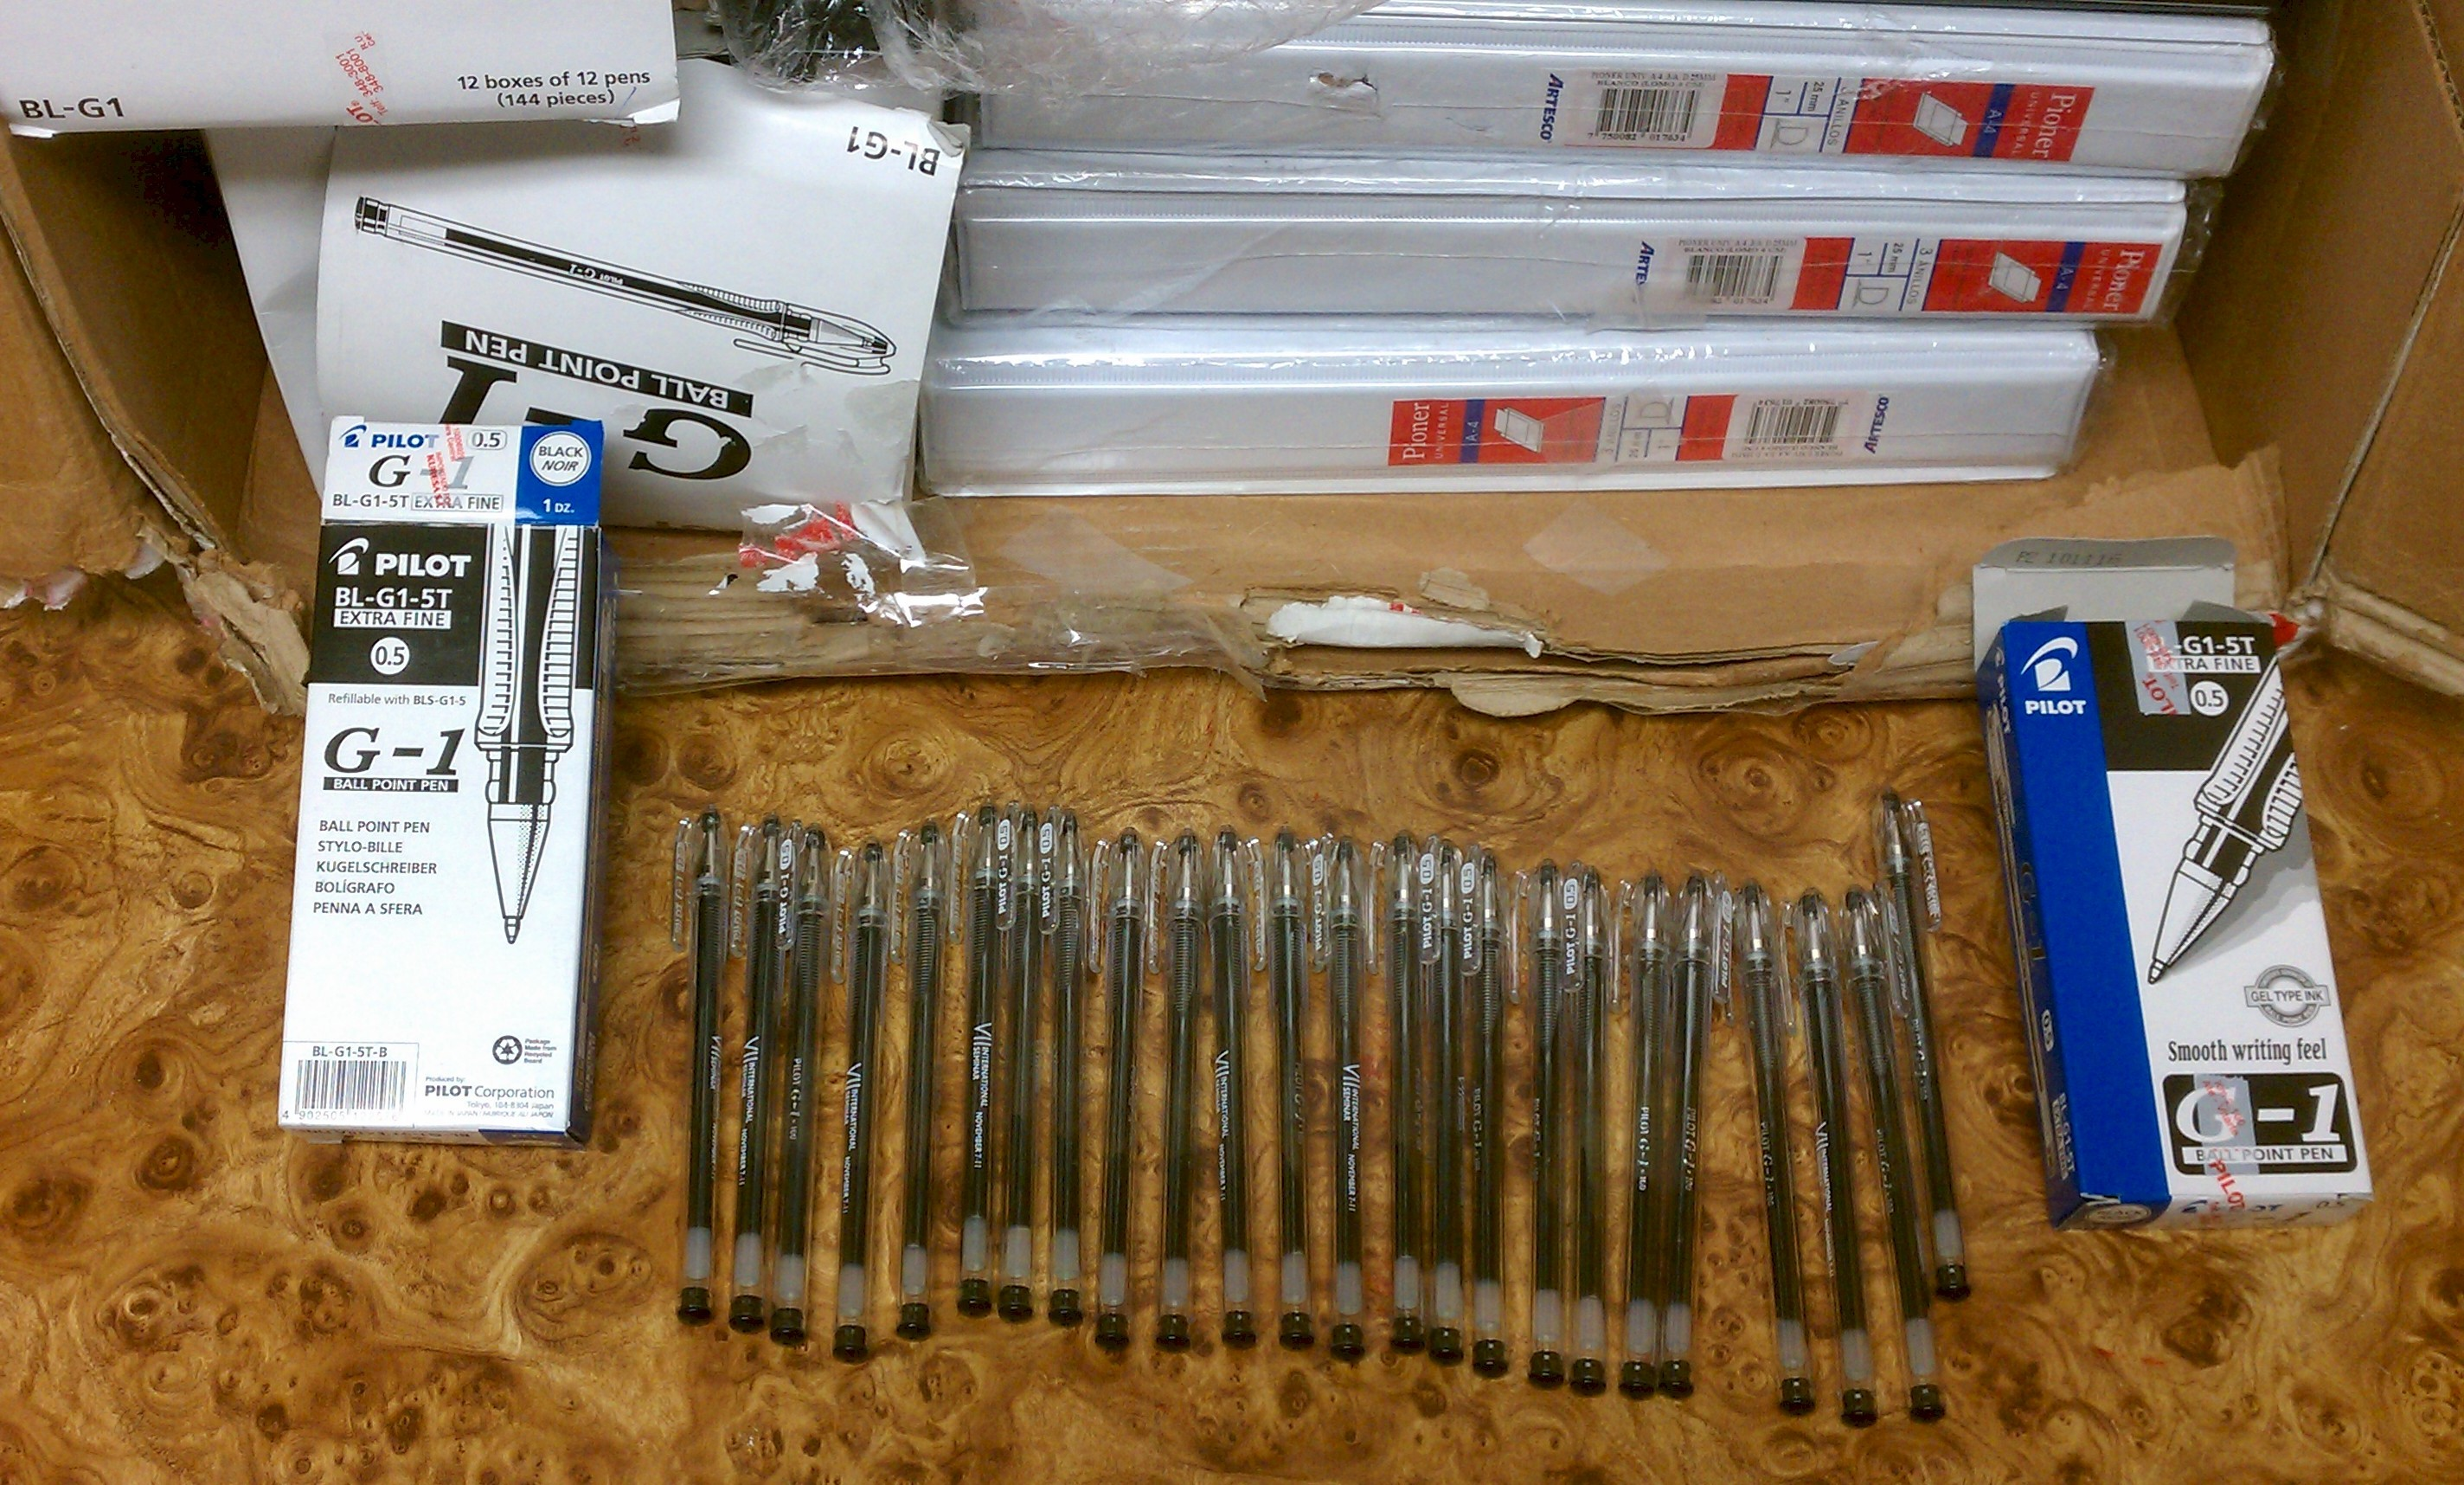 Pens seized by State Police & ICE agents